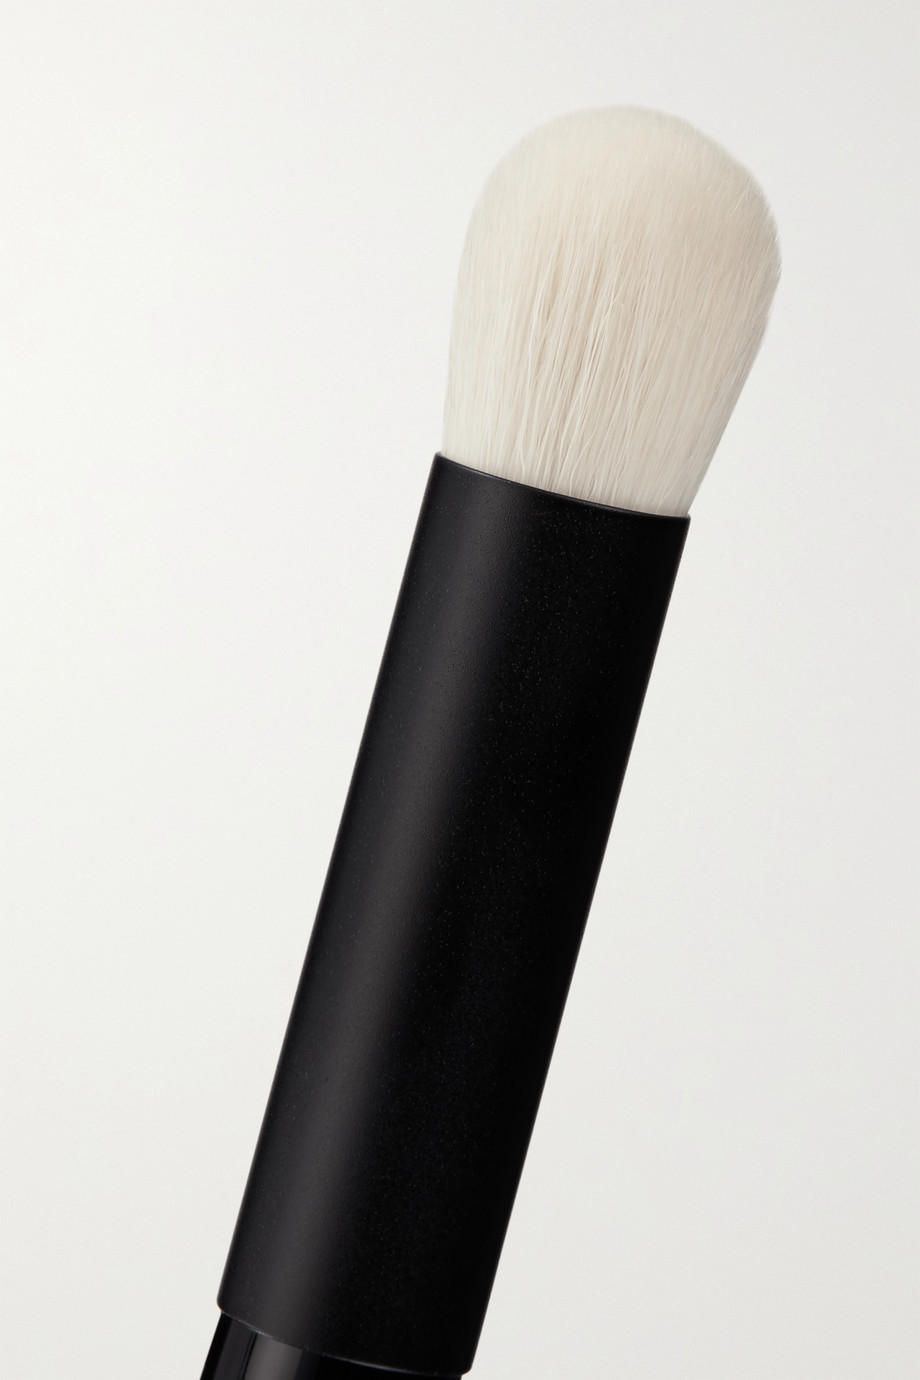 WESTMAN ATELIER Eye Shadow Brush II